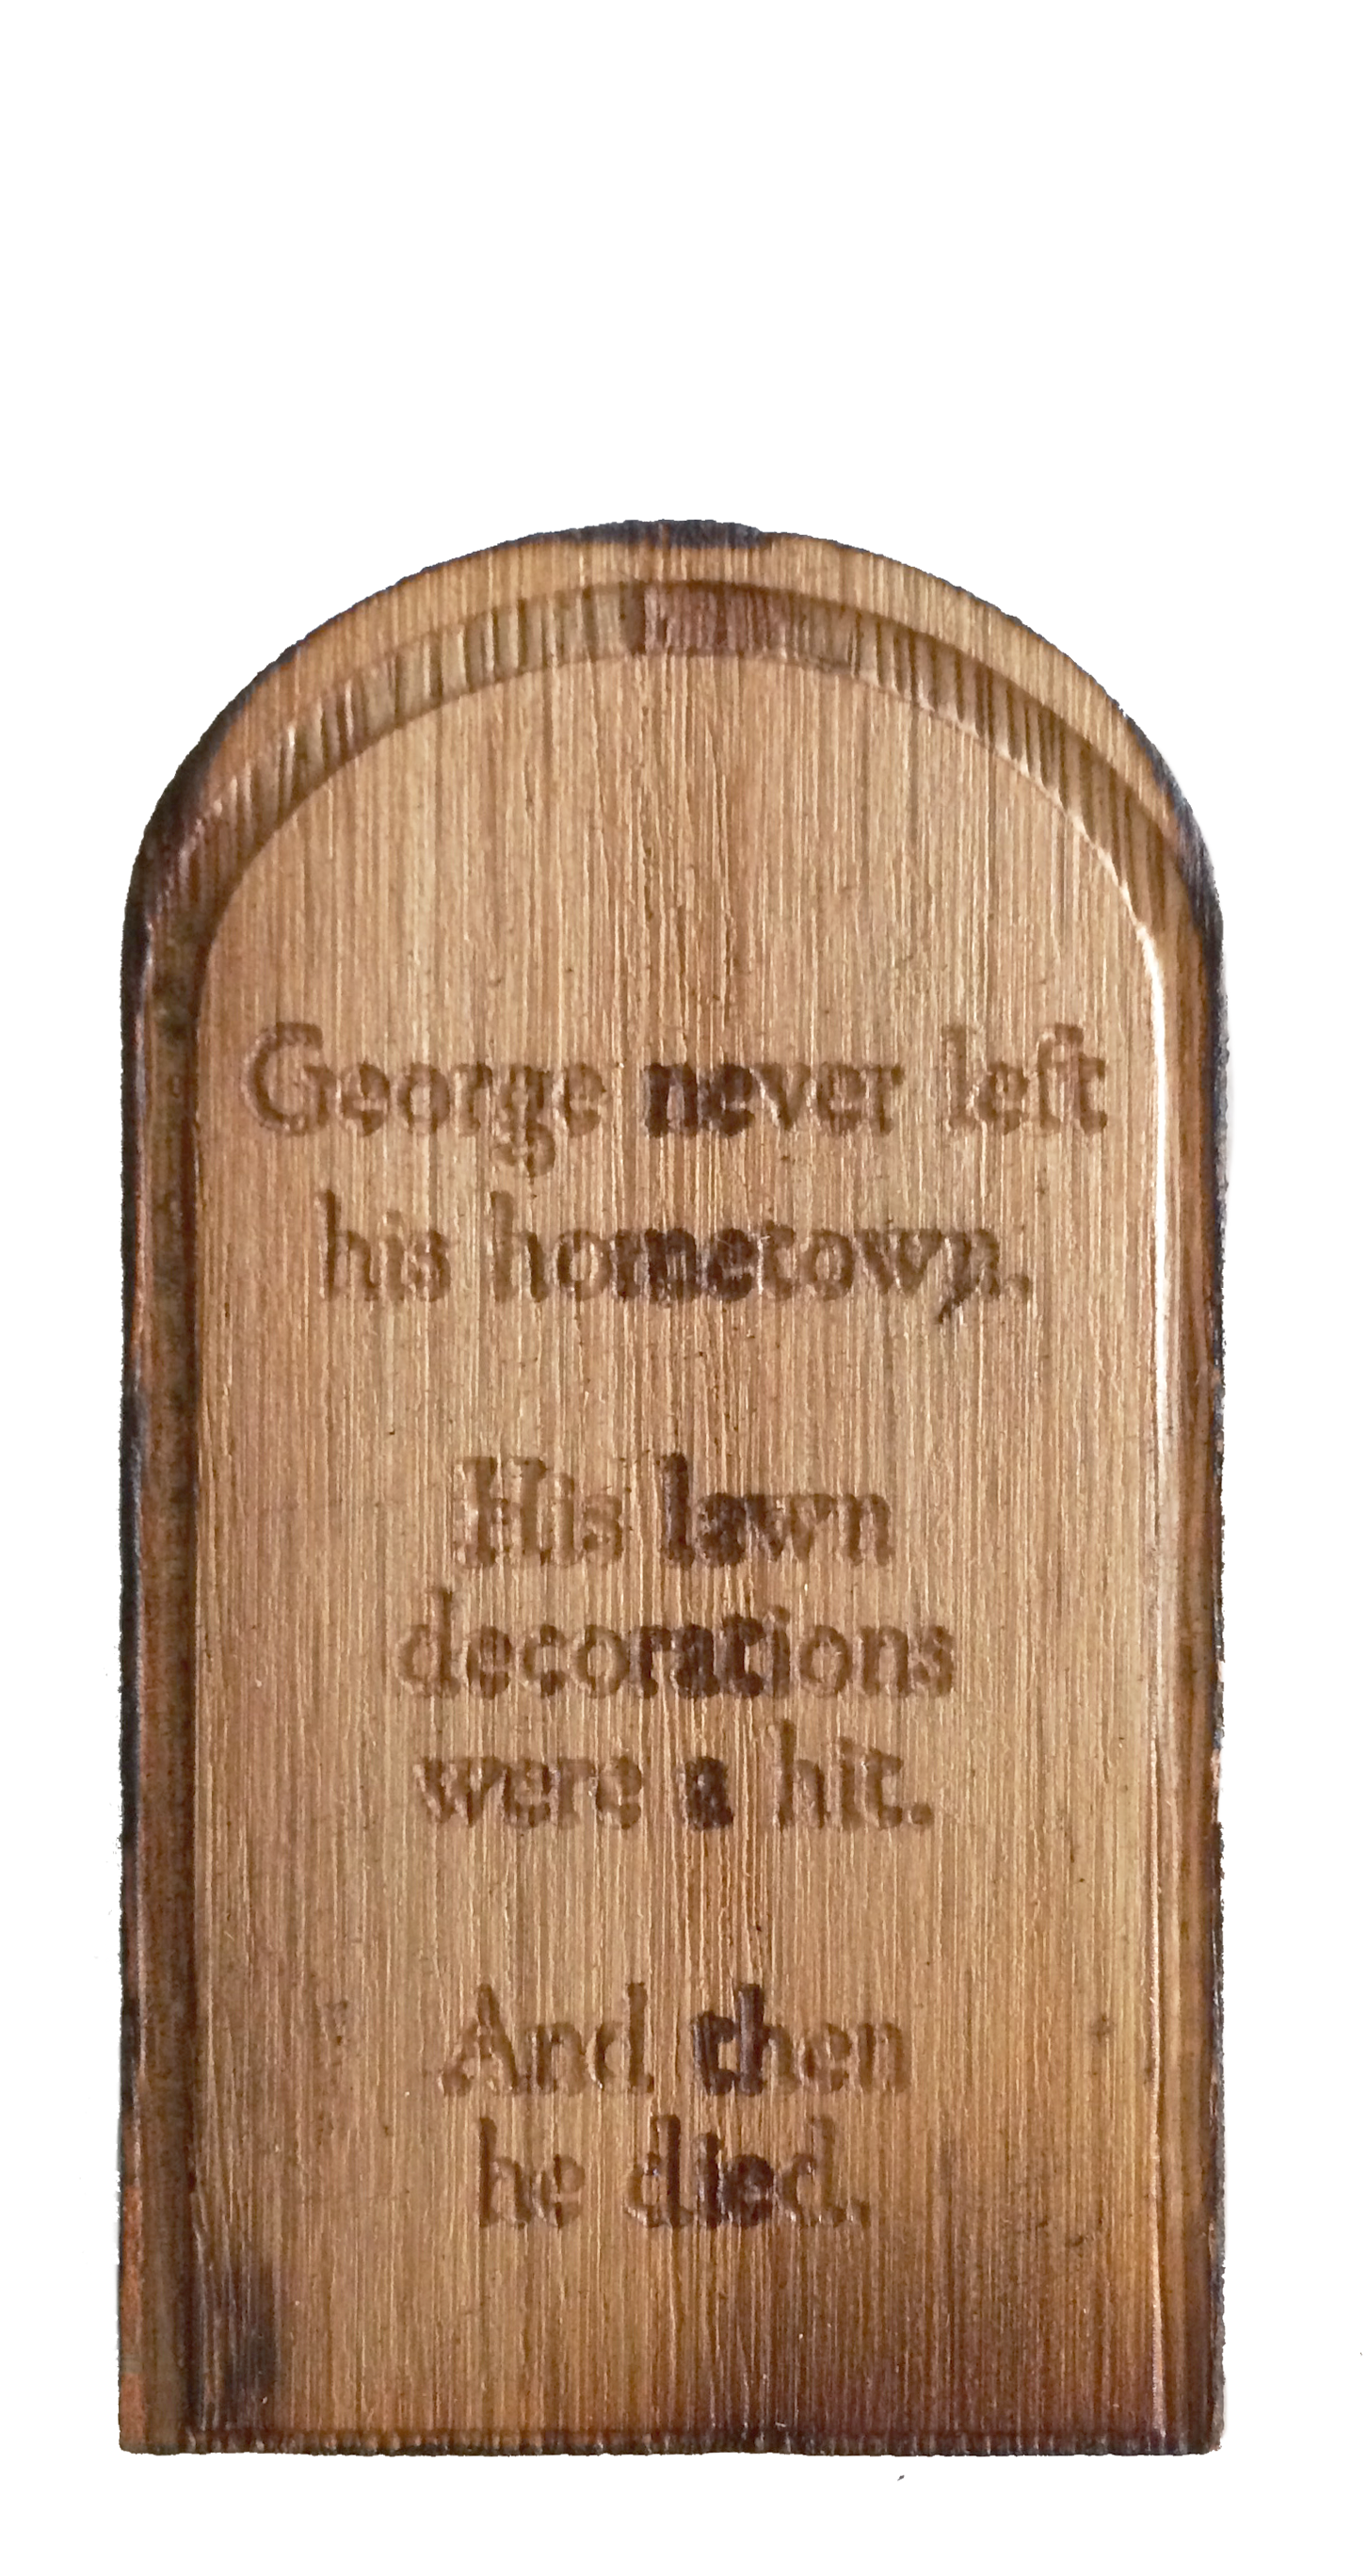 george-tombstone.png